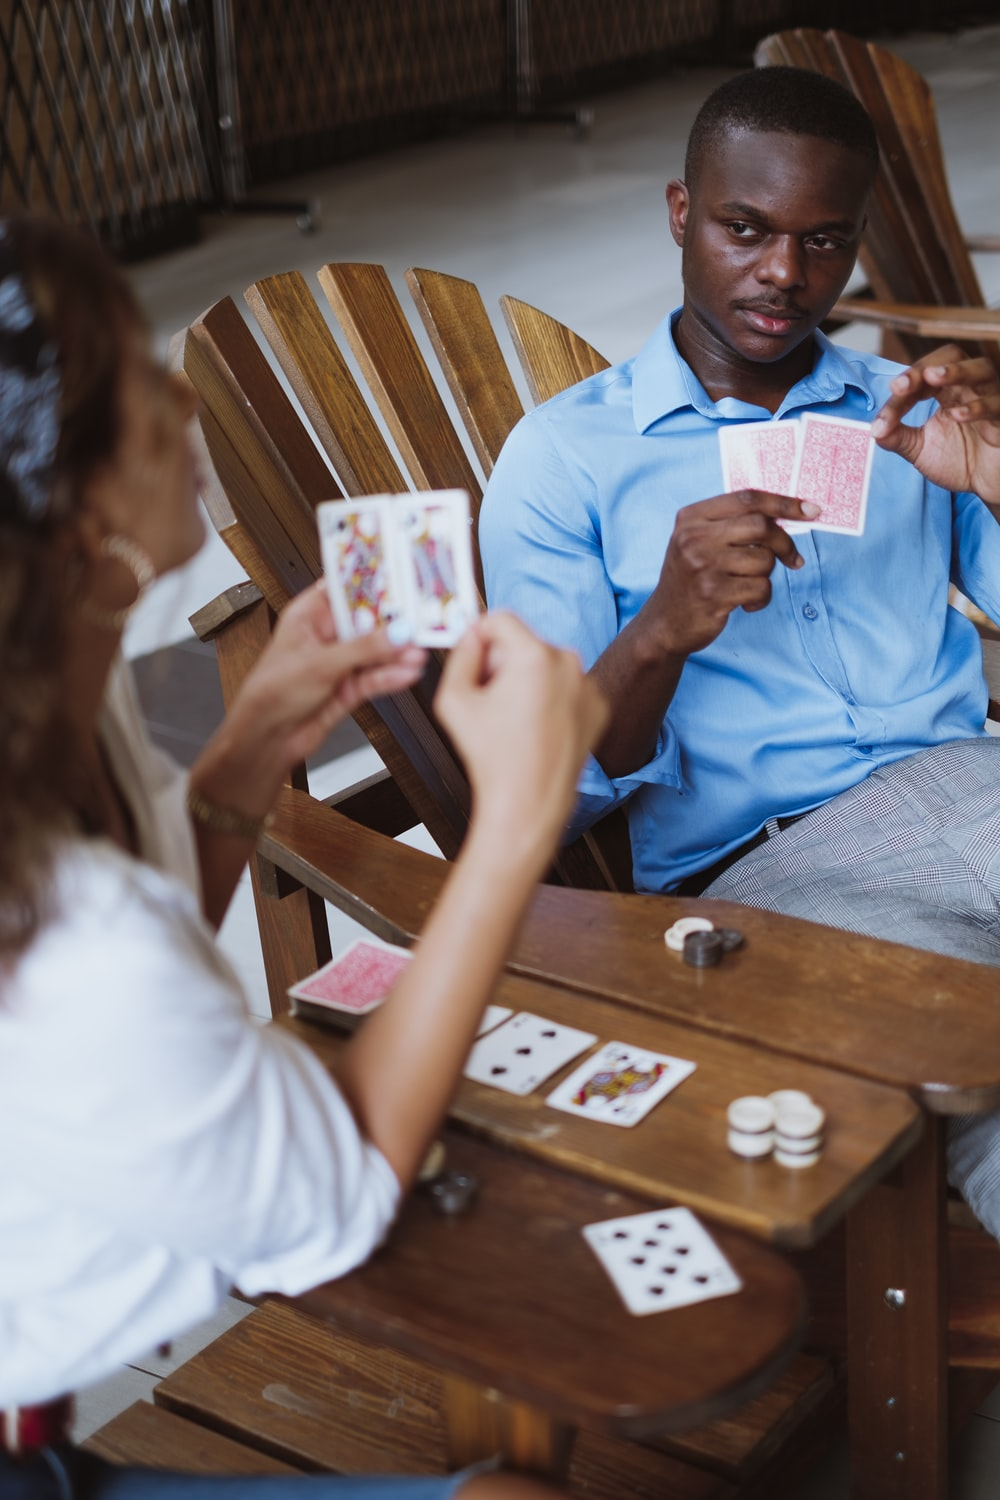 man in blue button up shirt holding playing cards